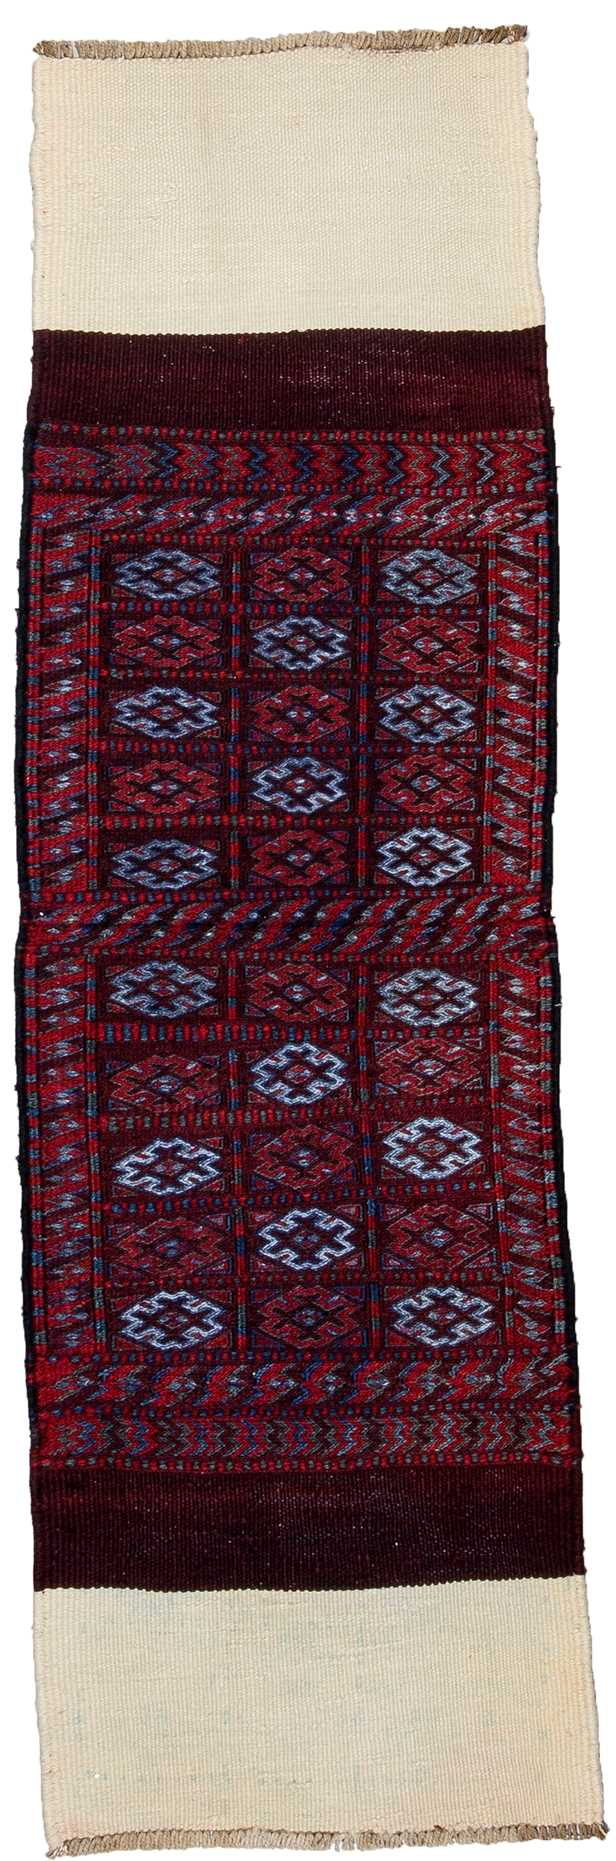 Tribal Hand Embroidery Runner Rug-6329